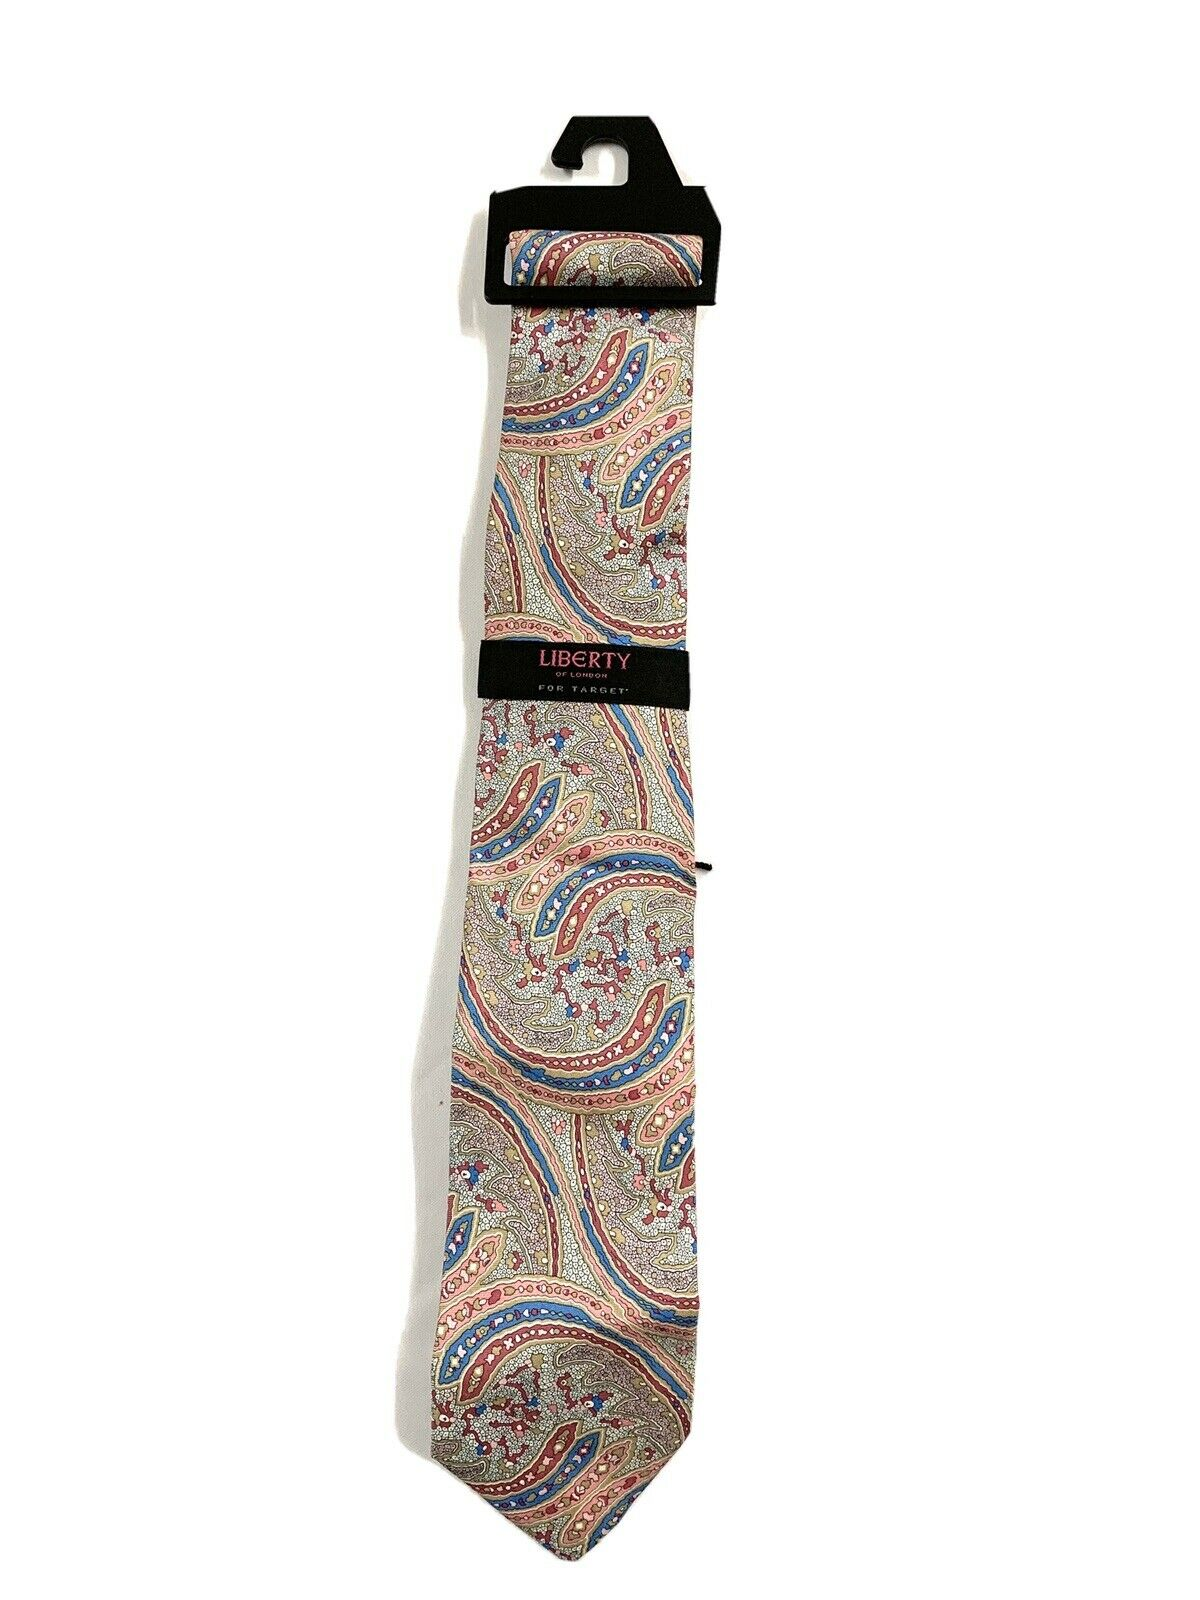 Vintage Liberty Mens Floral Tie 100% SILK PAISLEY NEW WITH TAGS